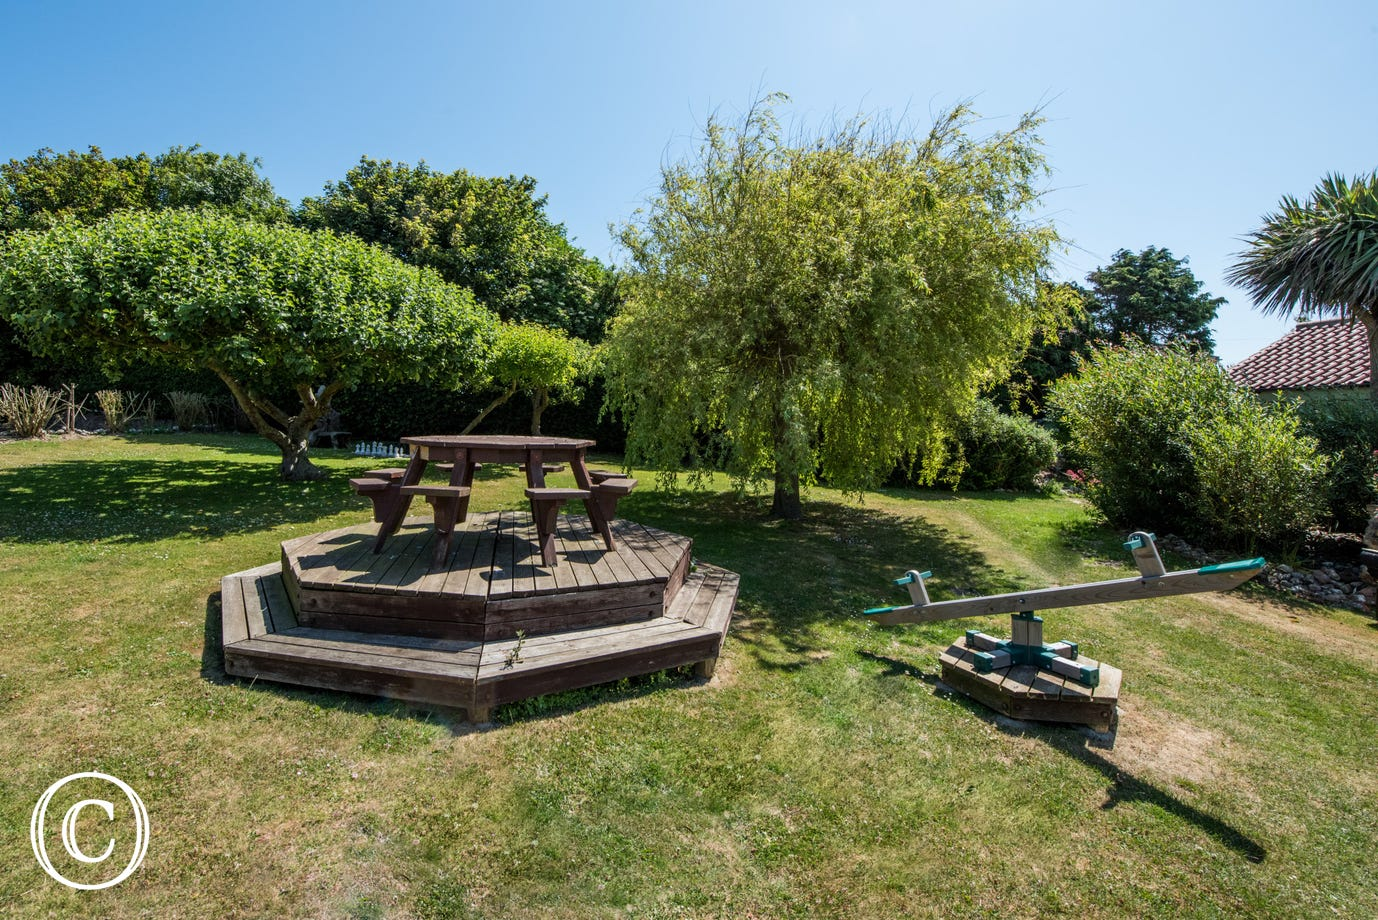 Each cottage has its own private area with table, chairs and a gas barbecue, perfect for al fresco dining. There is also shared use of the extensive gardens with a summerhouse, outdoor chess set and swing ball